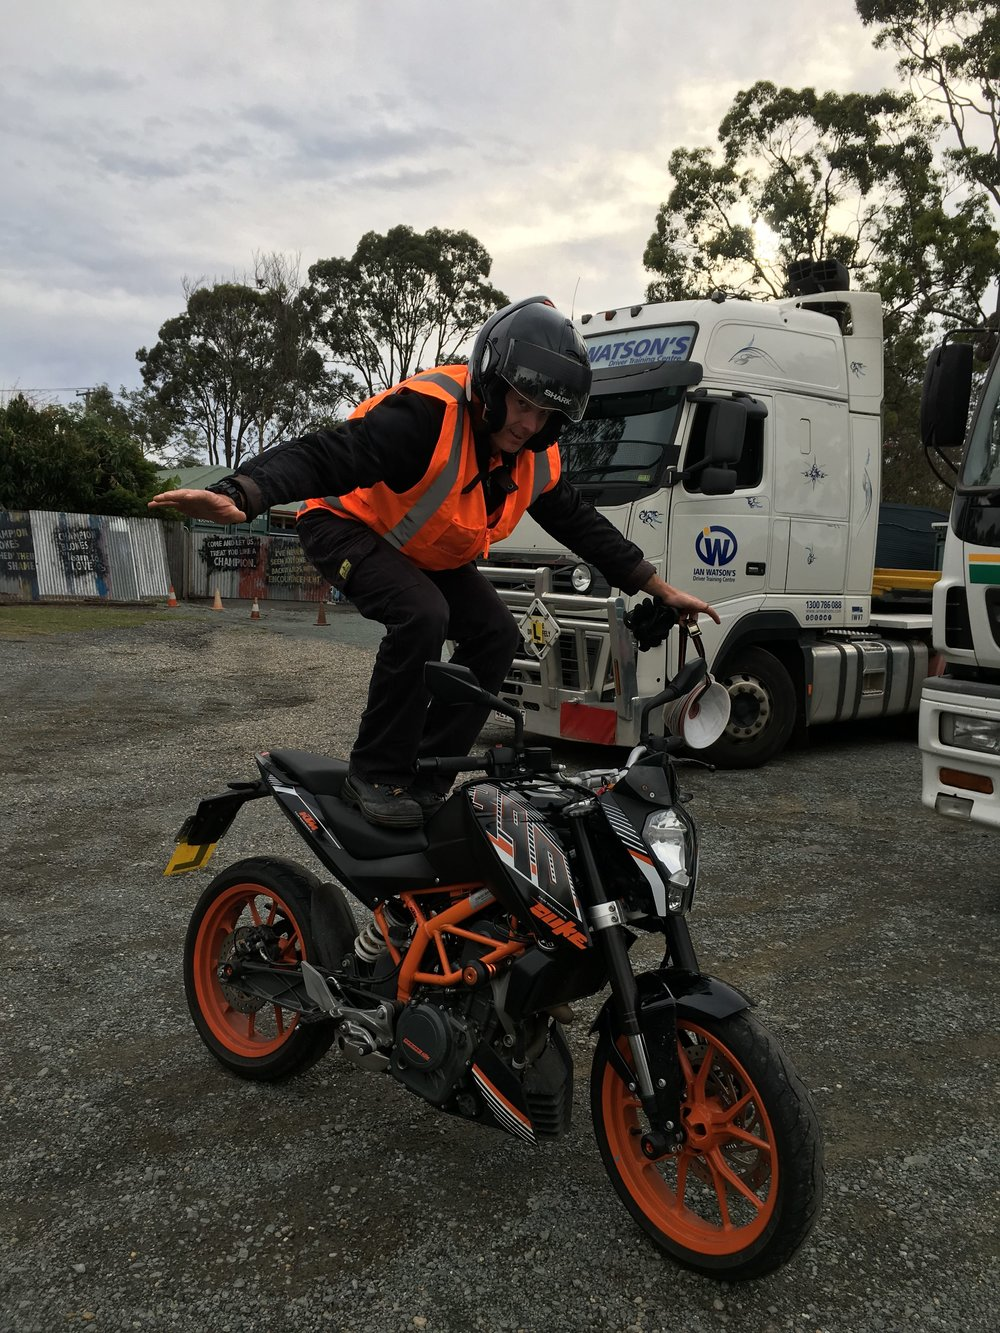 ktm duke brisbane queensland ian watsons